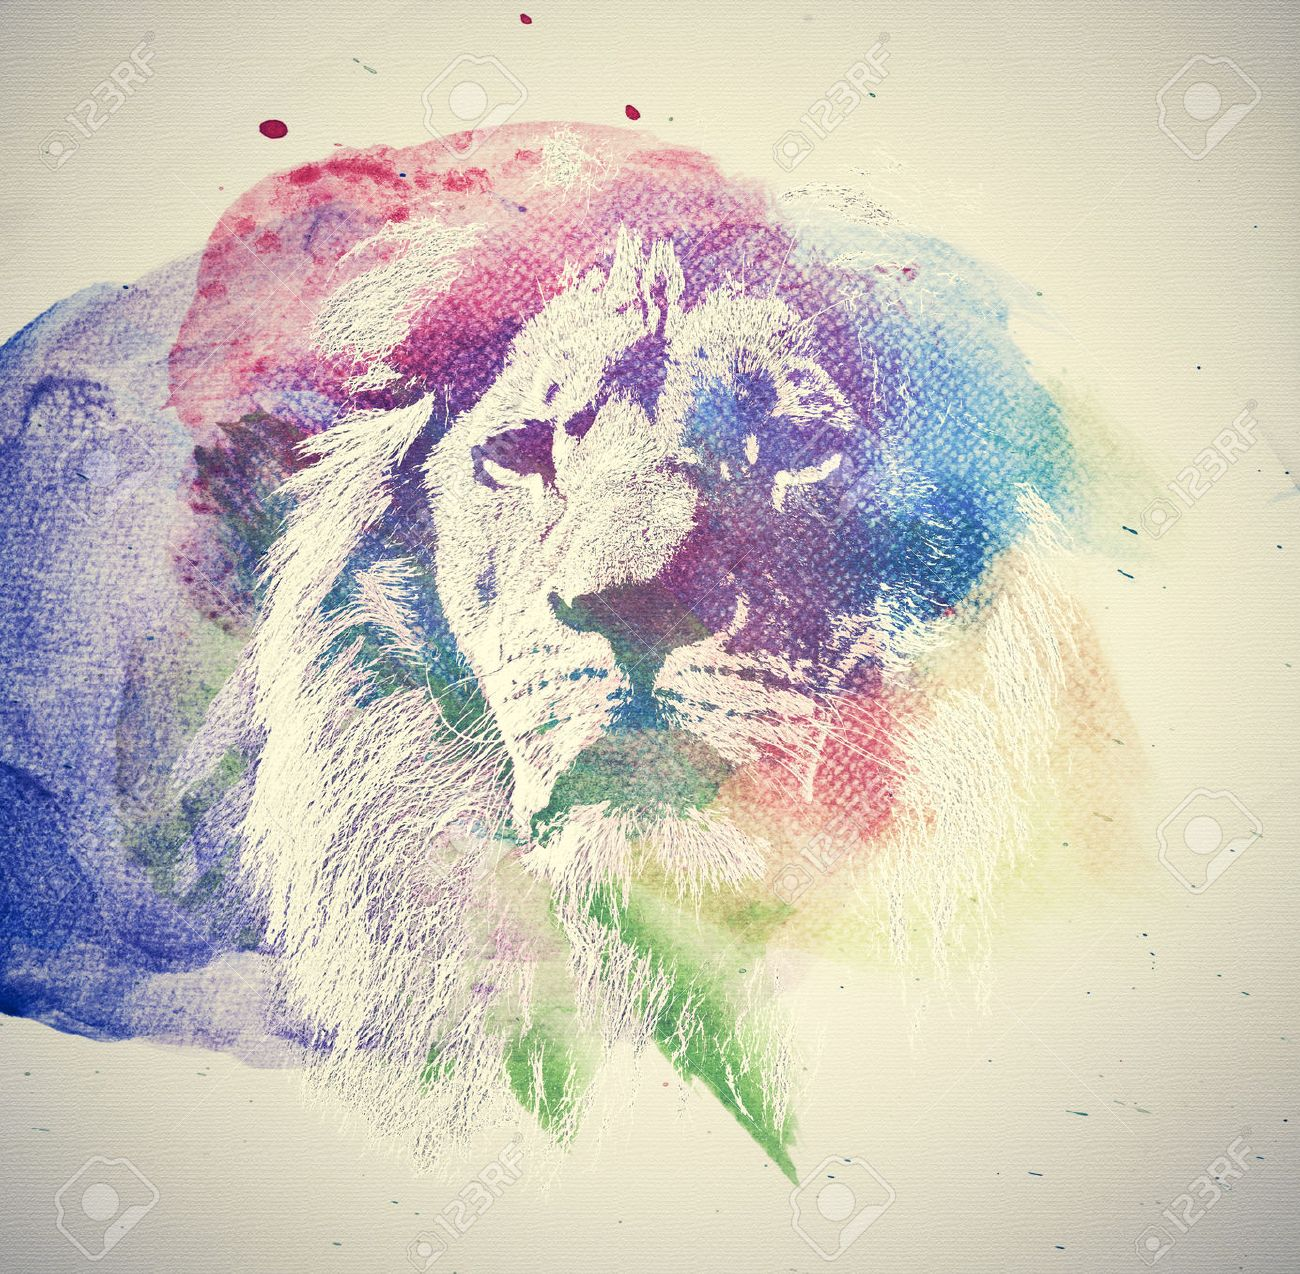 Watercolor Painting Of Lion Abstract Colorful Art Unique Stock